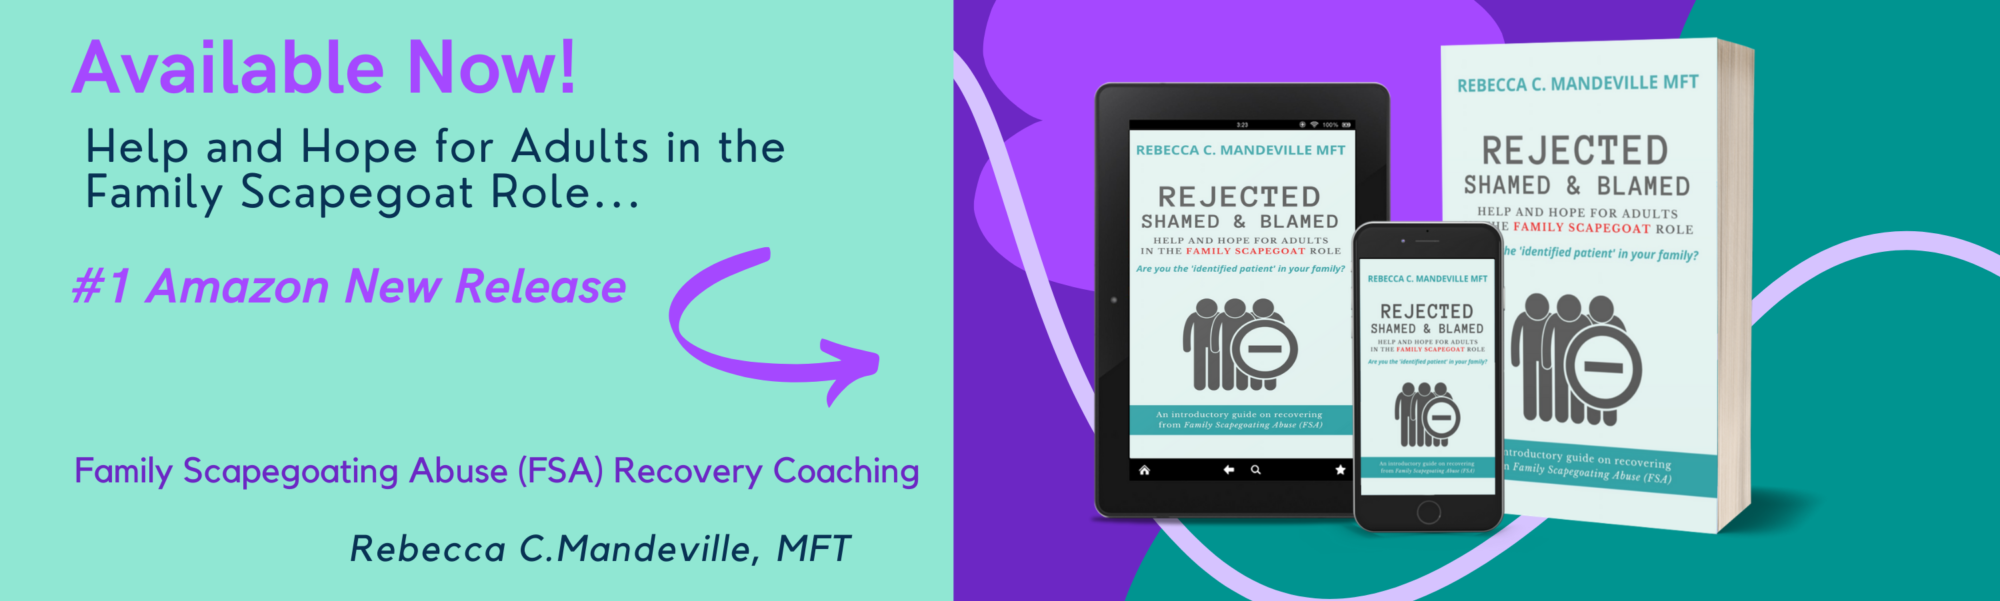 Scapegoat Recovery Coaching